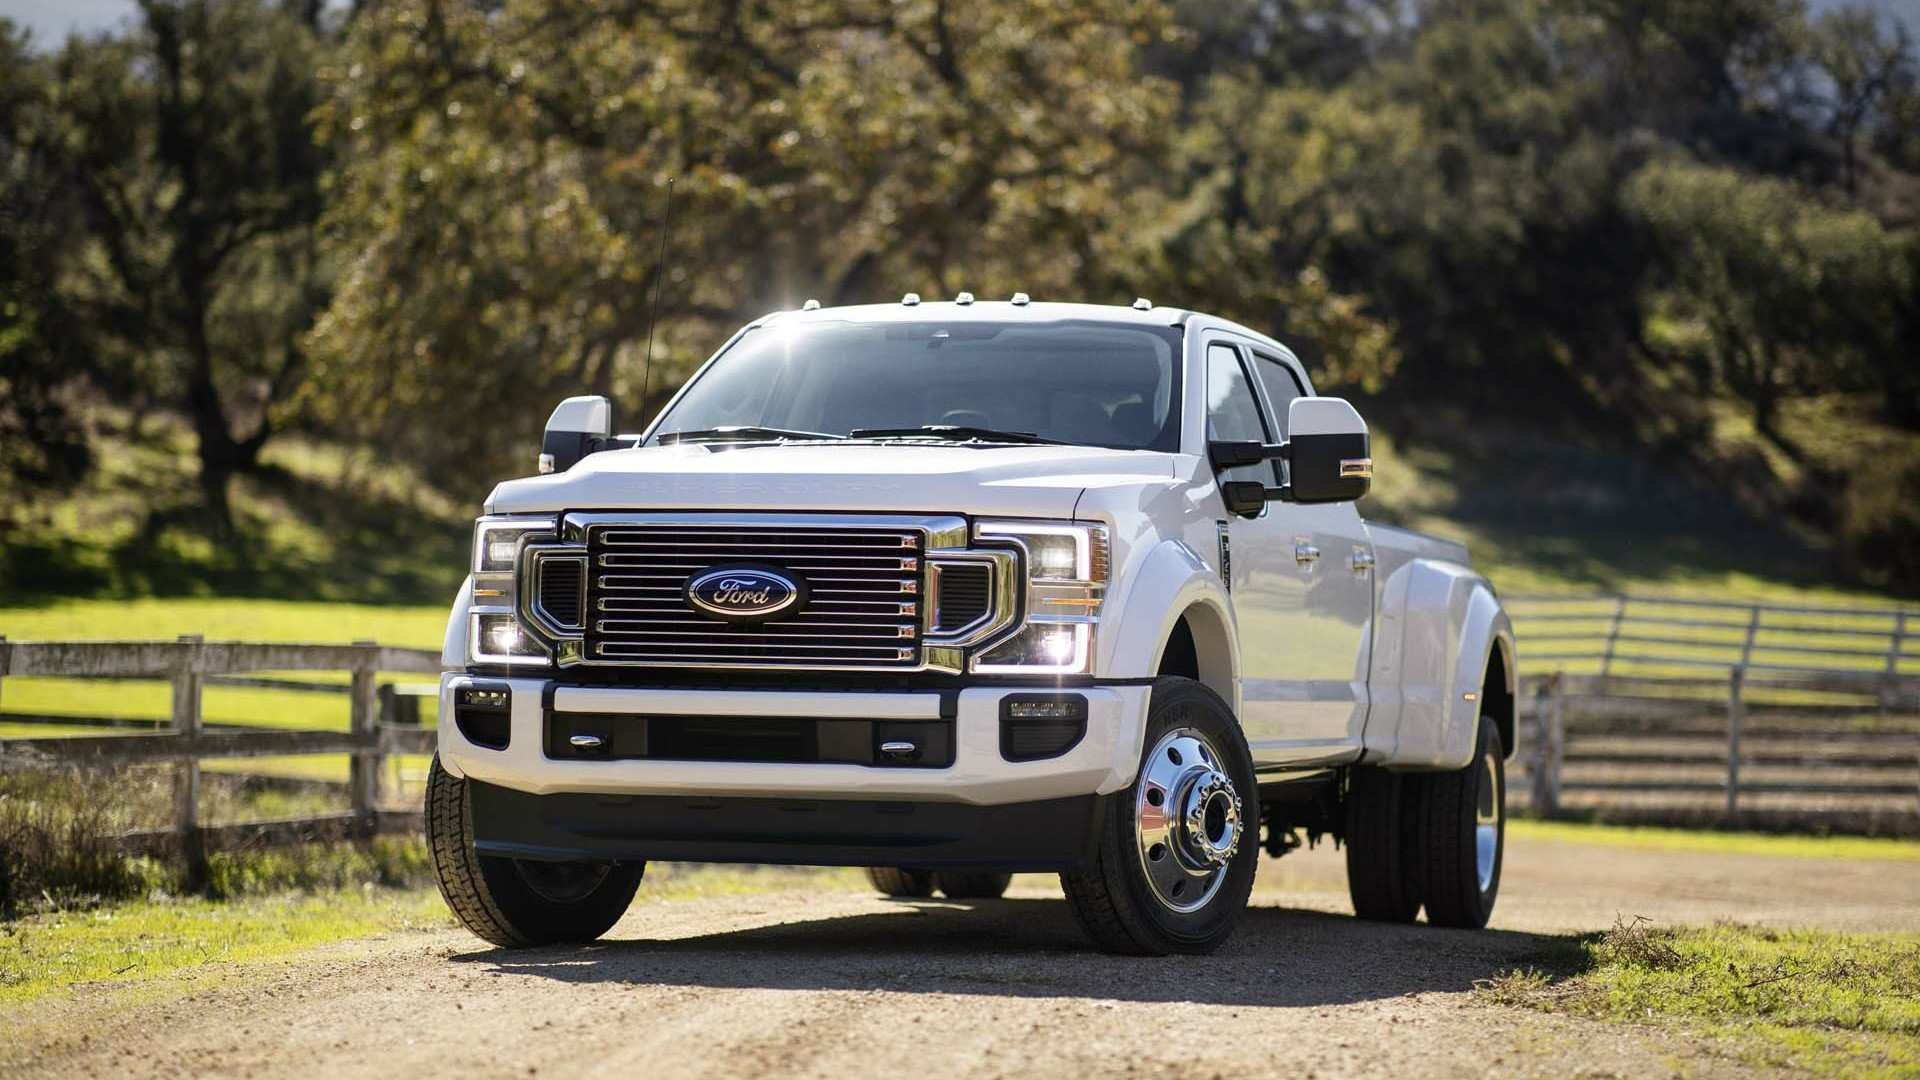 70 The Best 2020 Ford F250 New Model And Performance